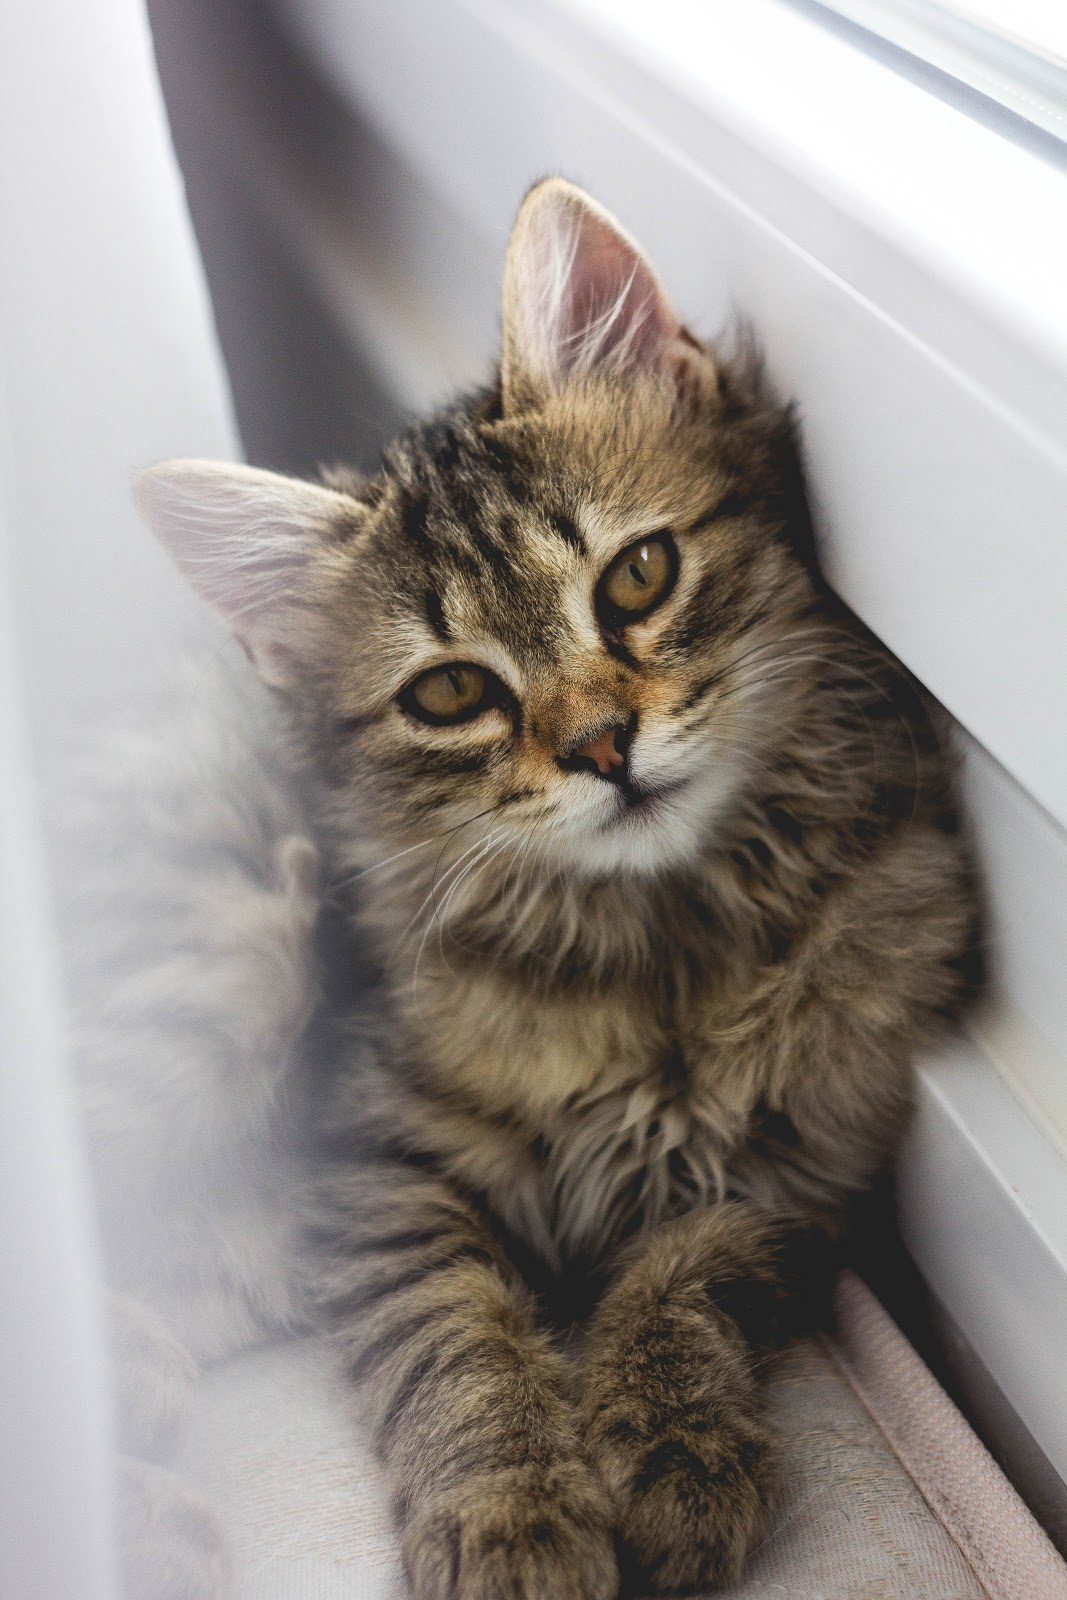 Mirtazapine for cats